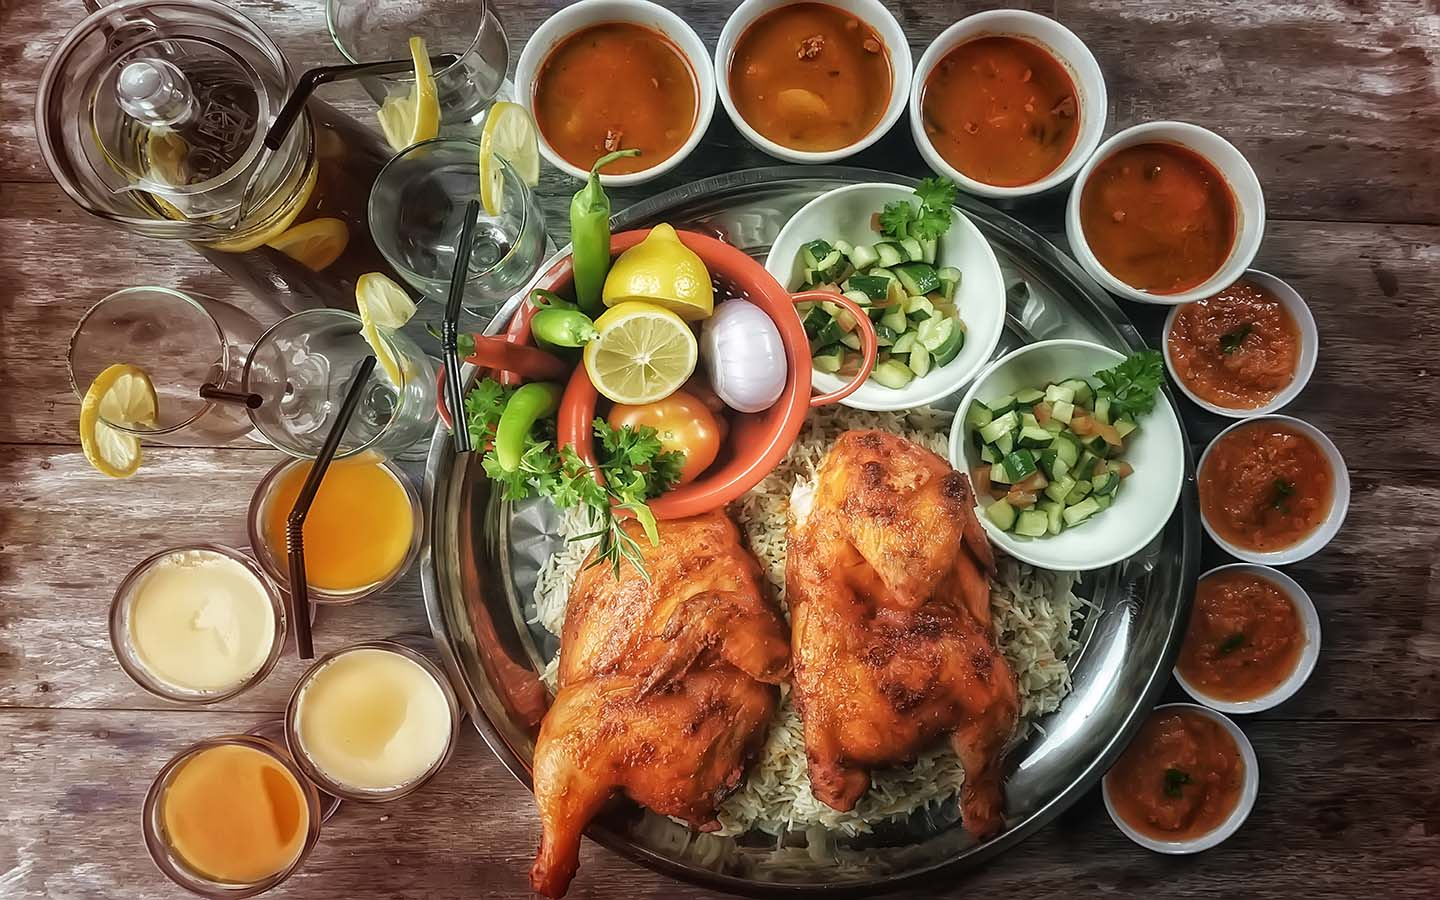 Top view of Chicken Mandy/Kabsa Rice, a kind of Arabian main course complete with side dishes and dessert.